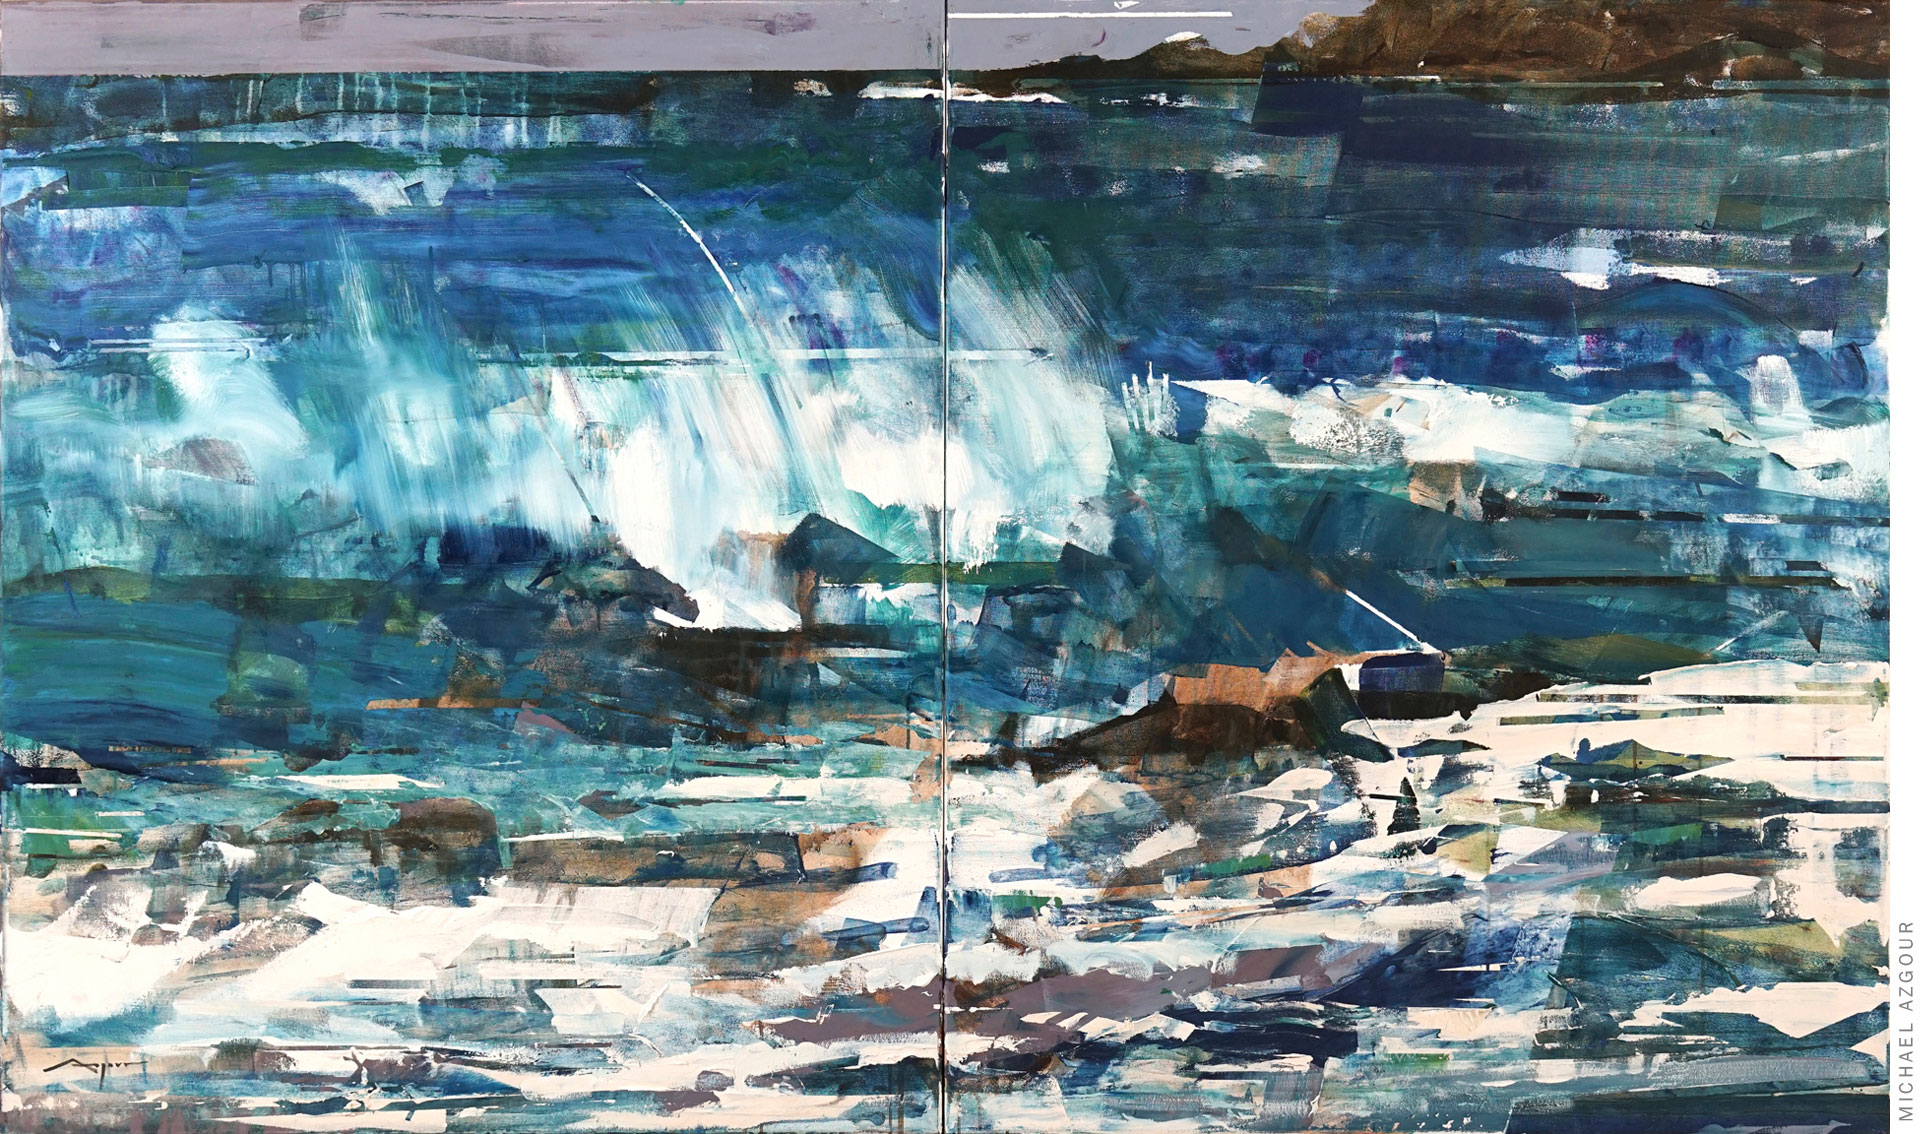 Wave, 2020, oil and acrylic on linen, Large-scale abstract representation of a wave breaking on the shore; Visually arresting painting by contemporary artist, Michael Azgour